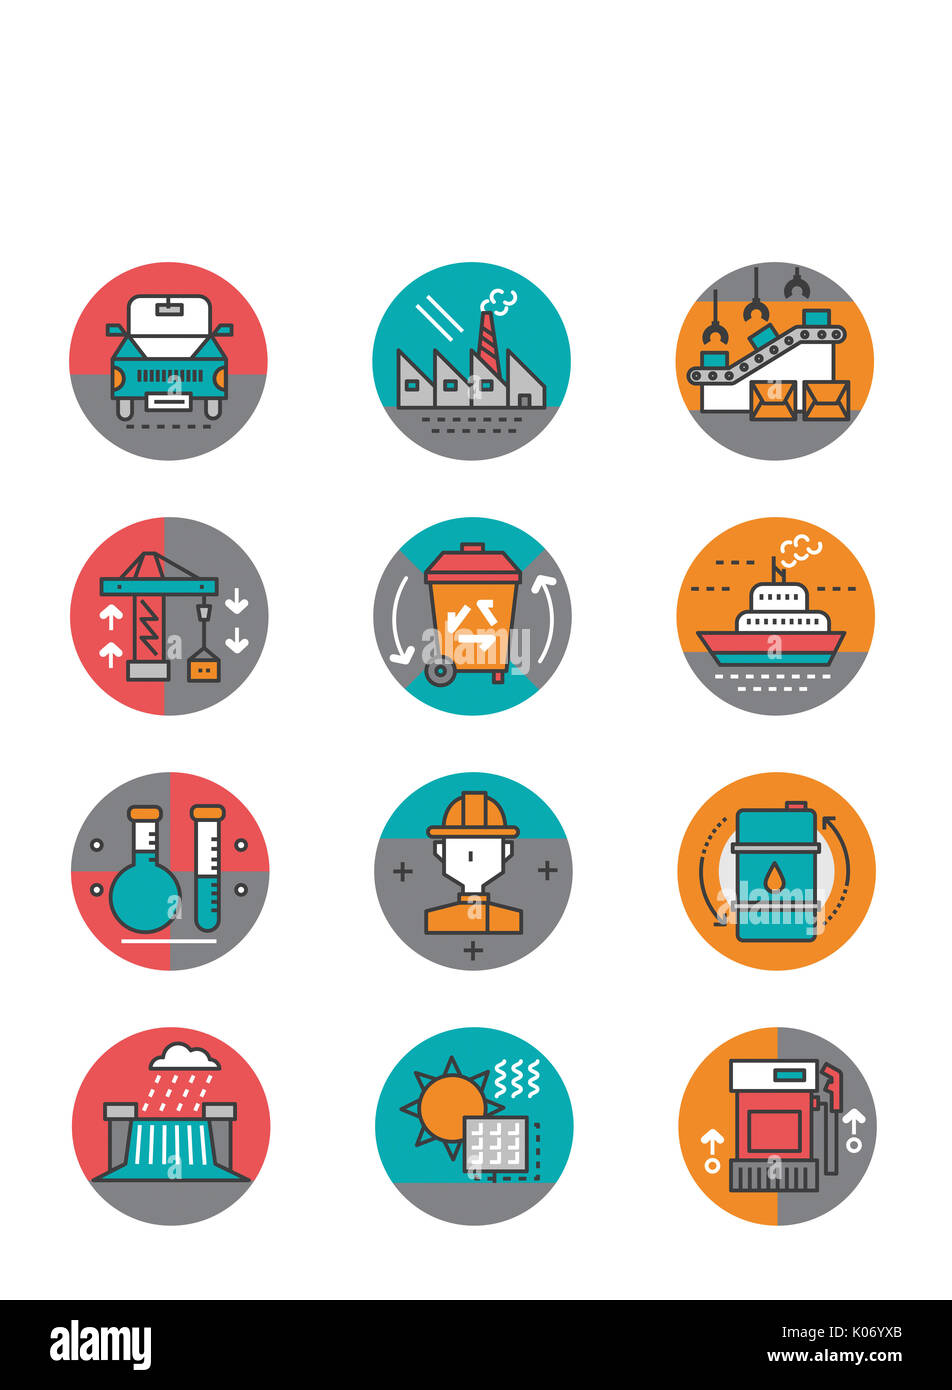 Set of various icons related to industries - Stock Image